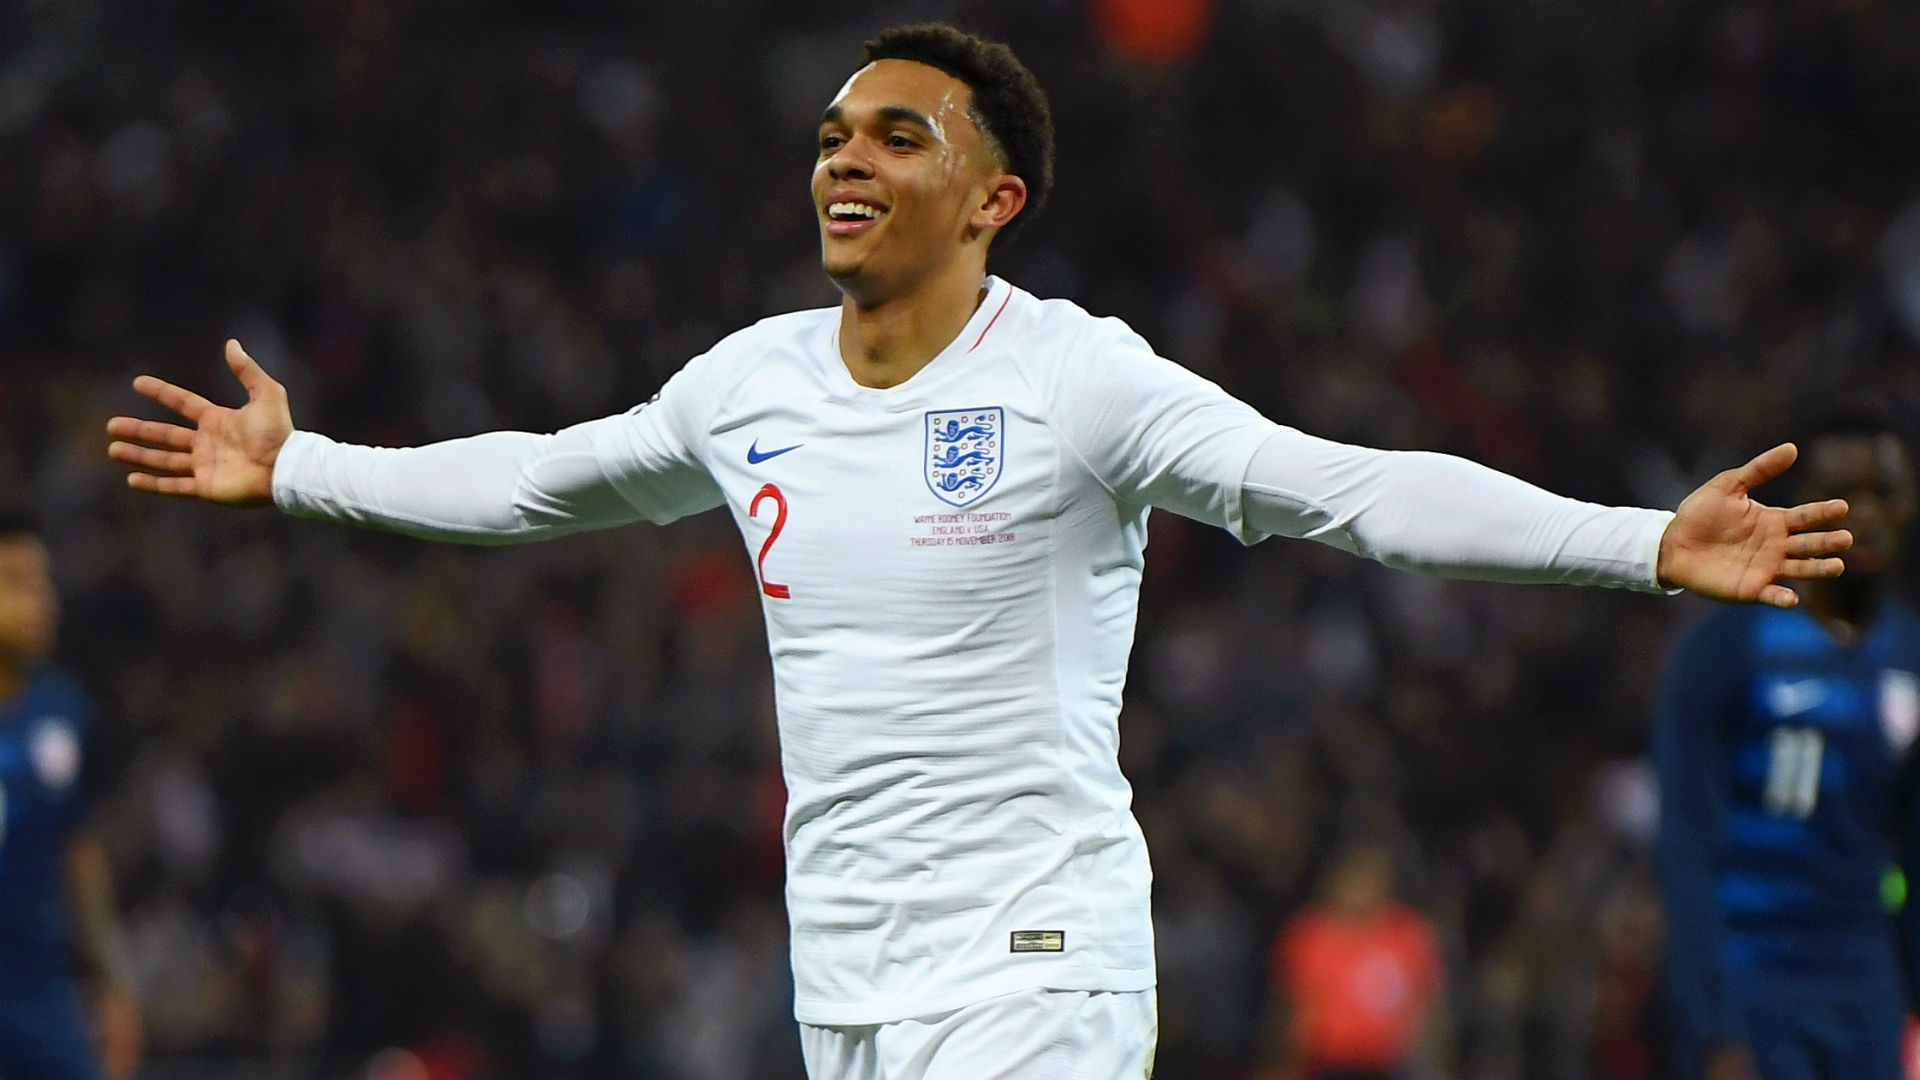 Alexander-Arnold still in dreamland as he targets 'massive' Nations League triumph